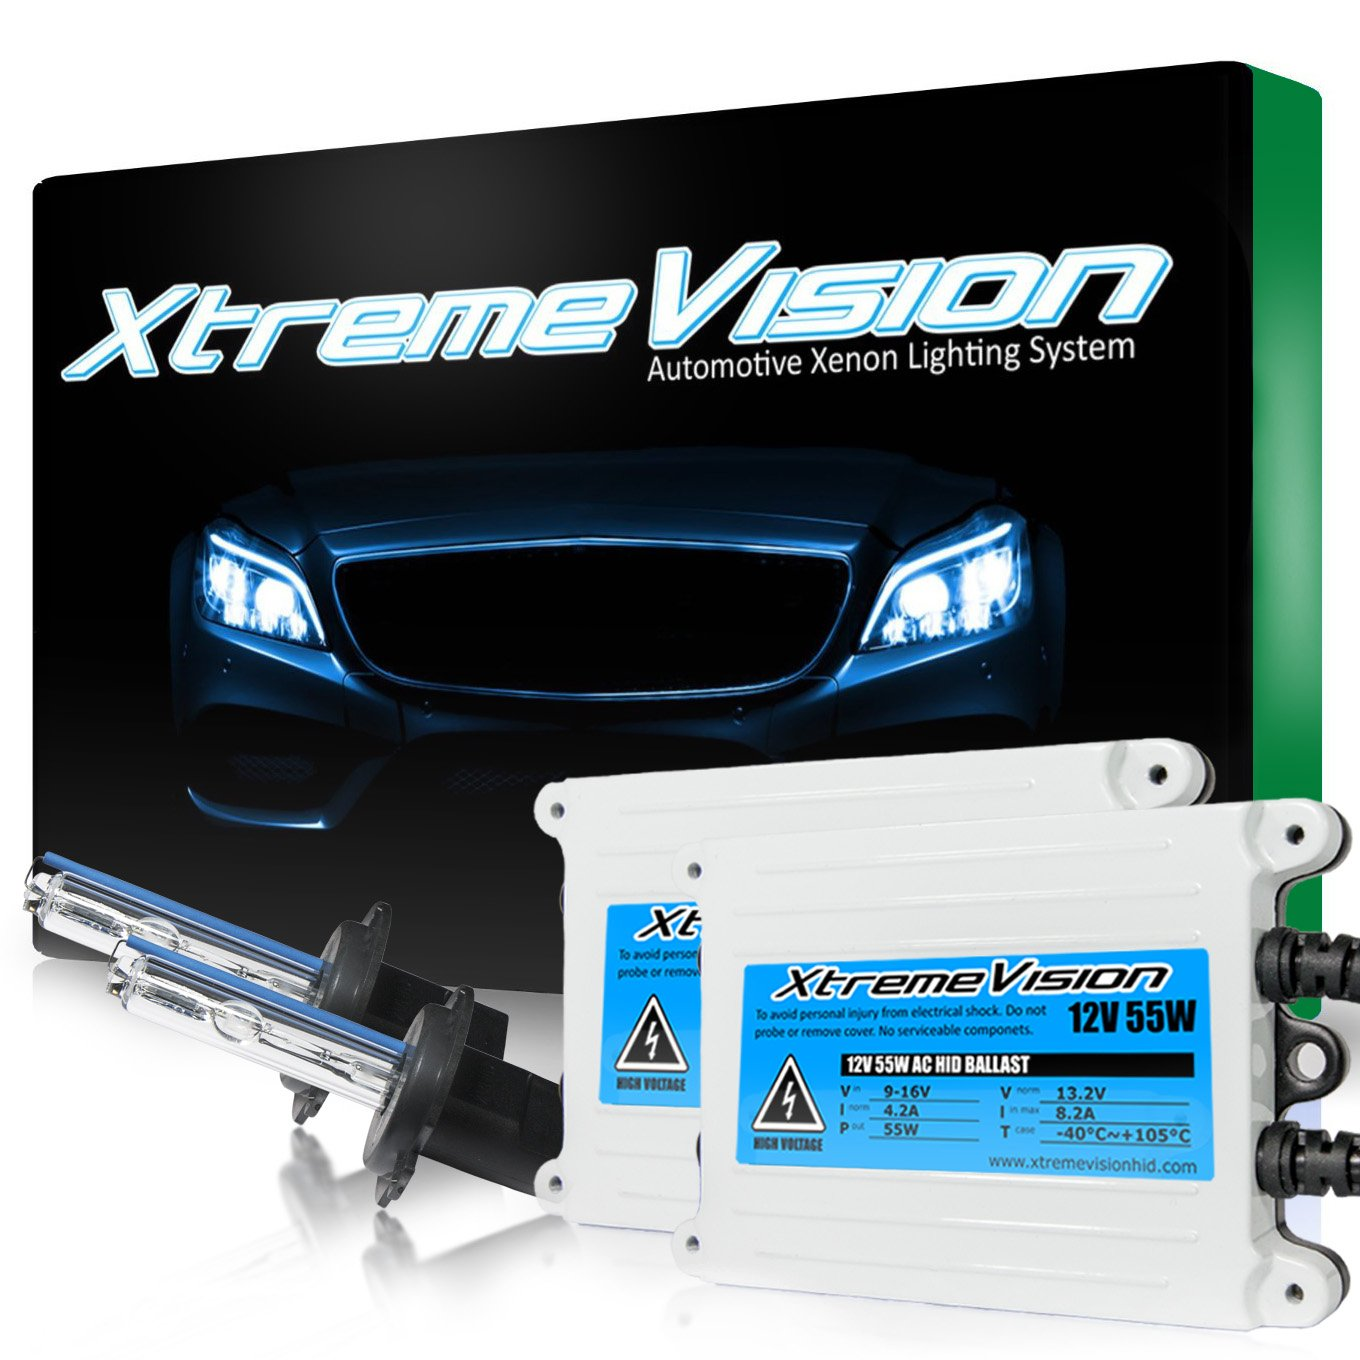 Xtremevision 55W AC Xenon HID Lights with Premium Slim AC Ballast - H7 4300K - 43K Bright Daylight - 2 Year Warranty